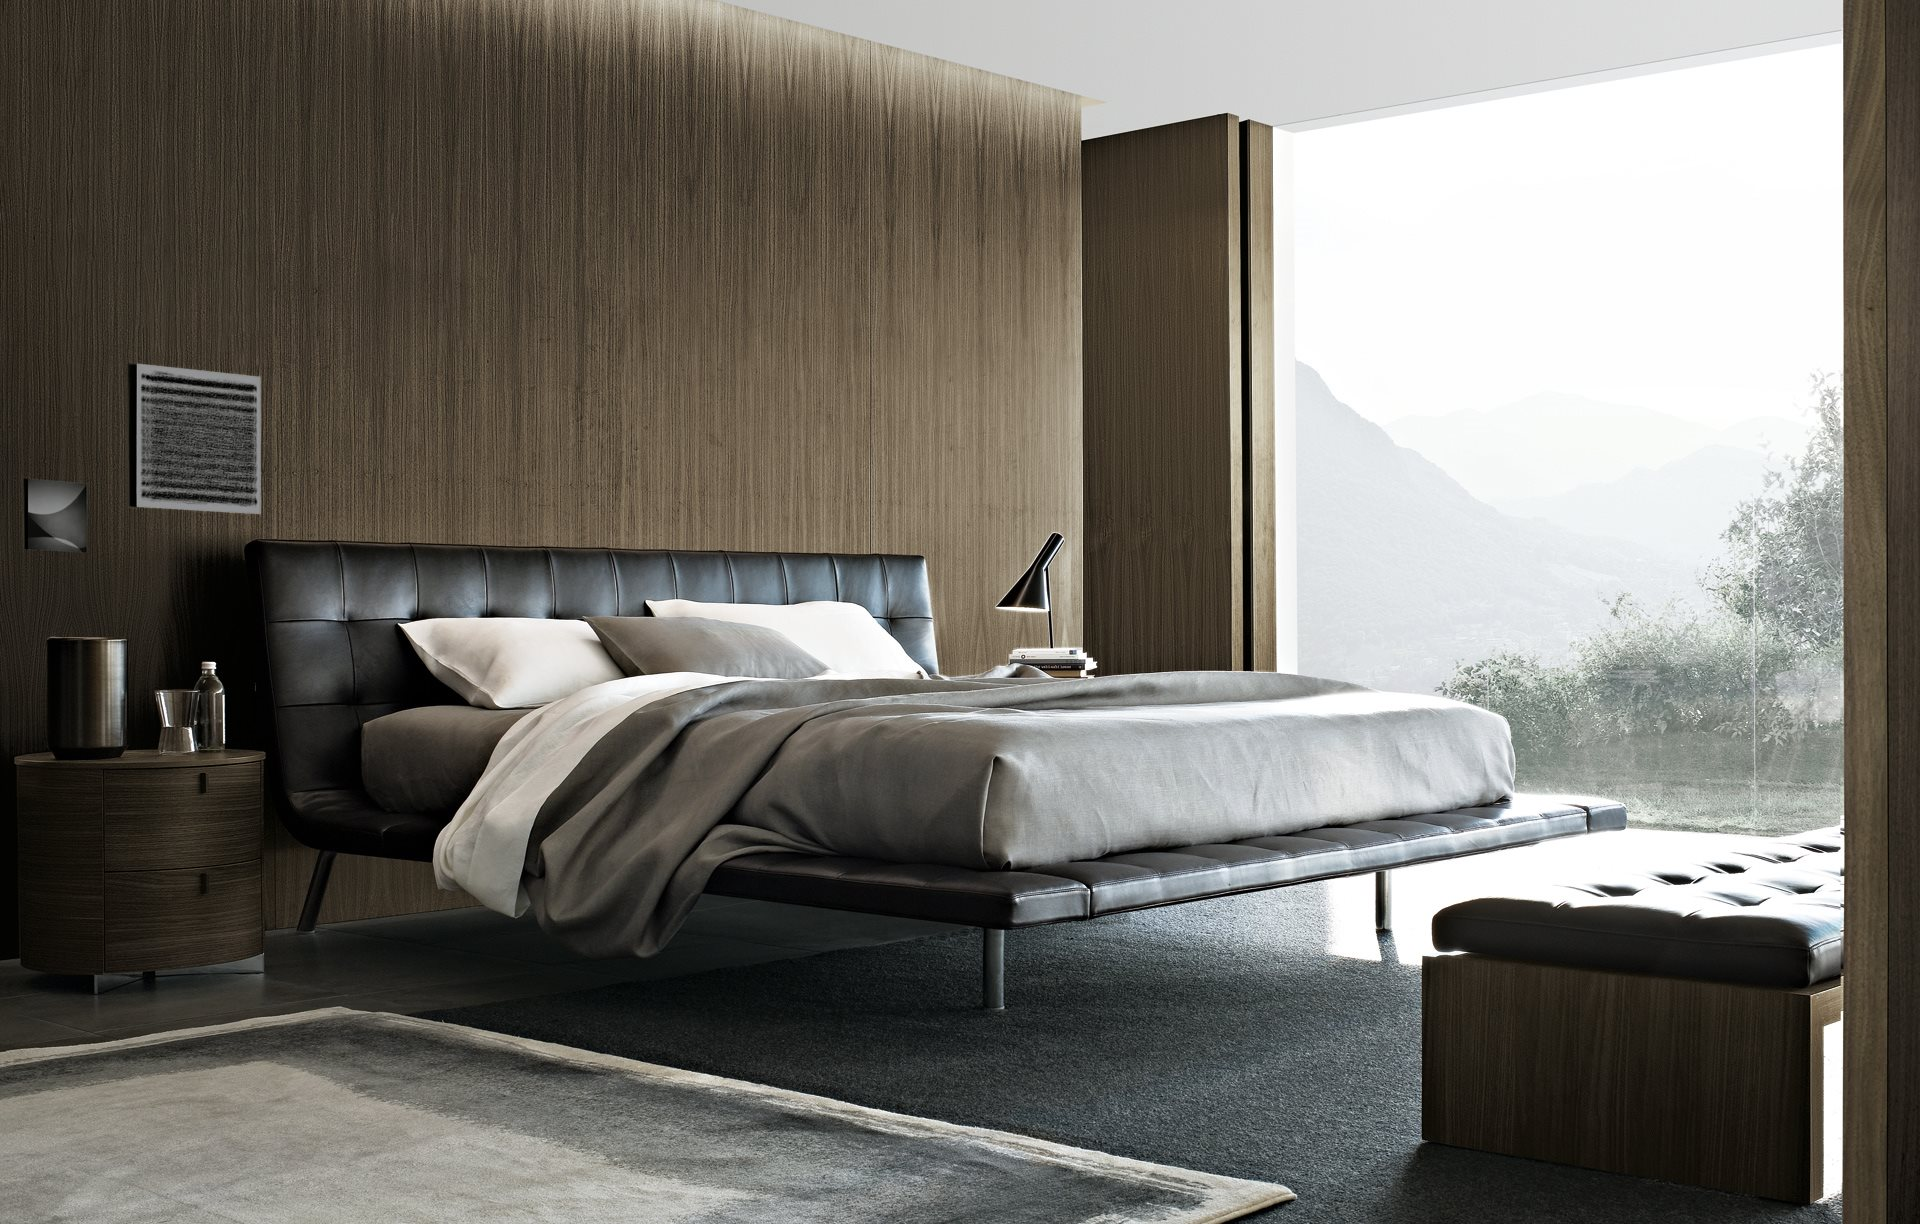 Onda Bed in Leather